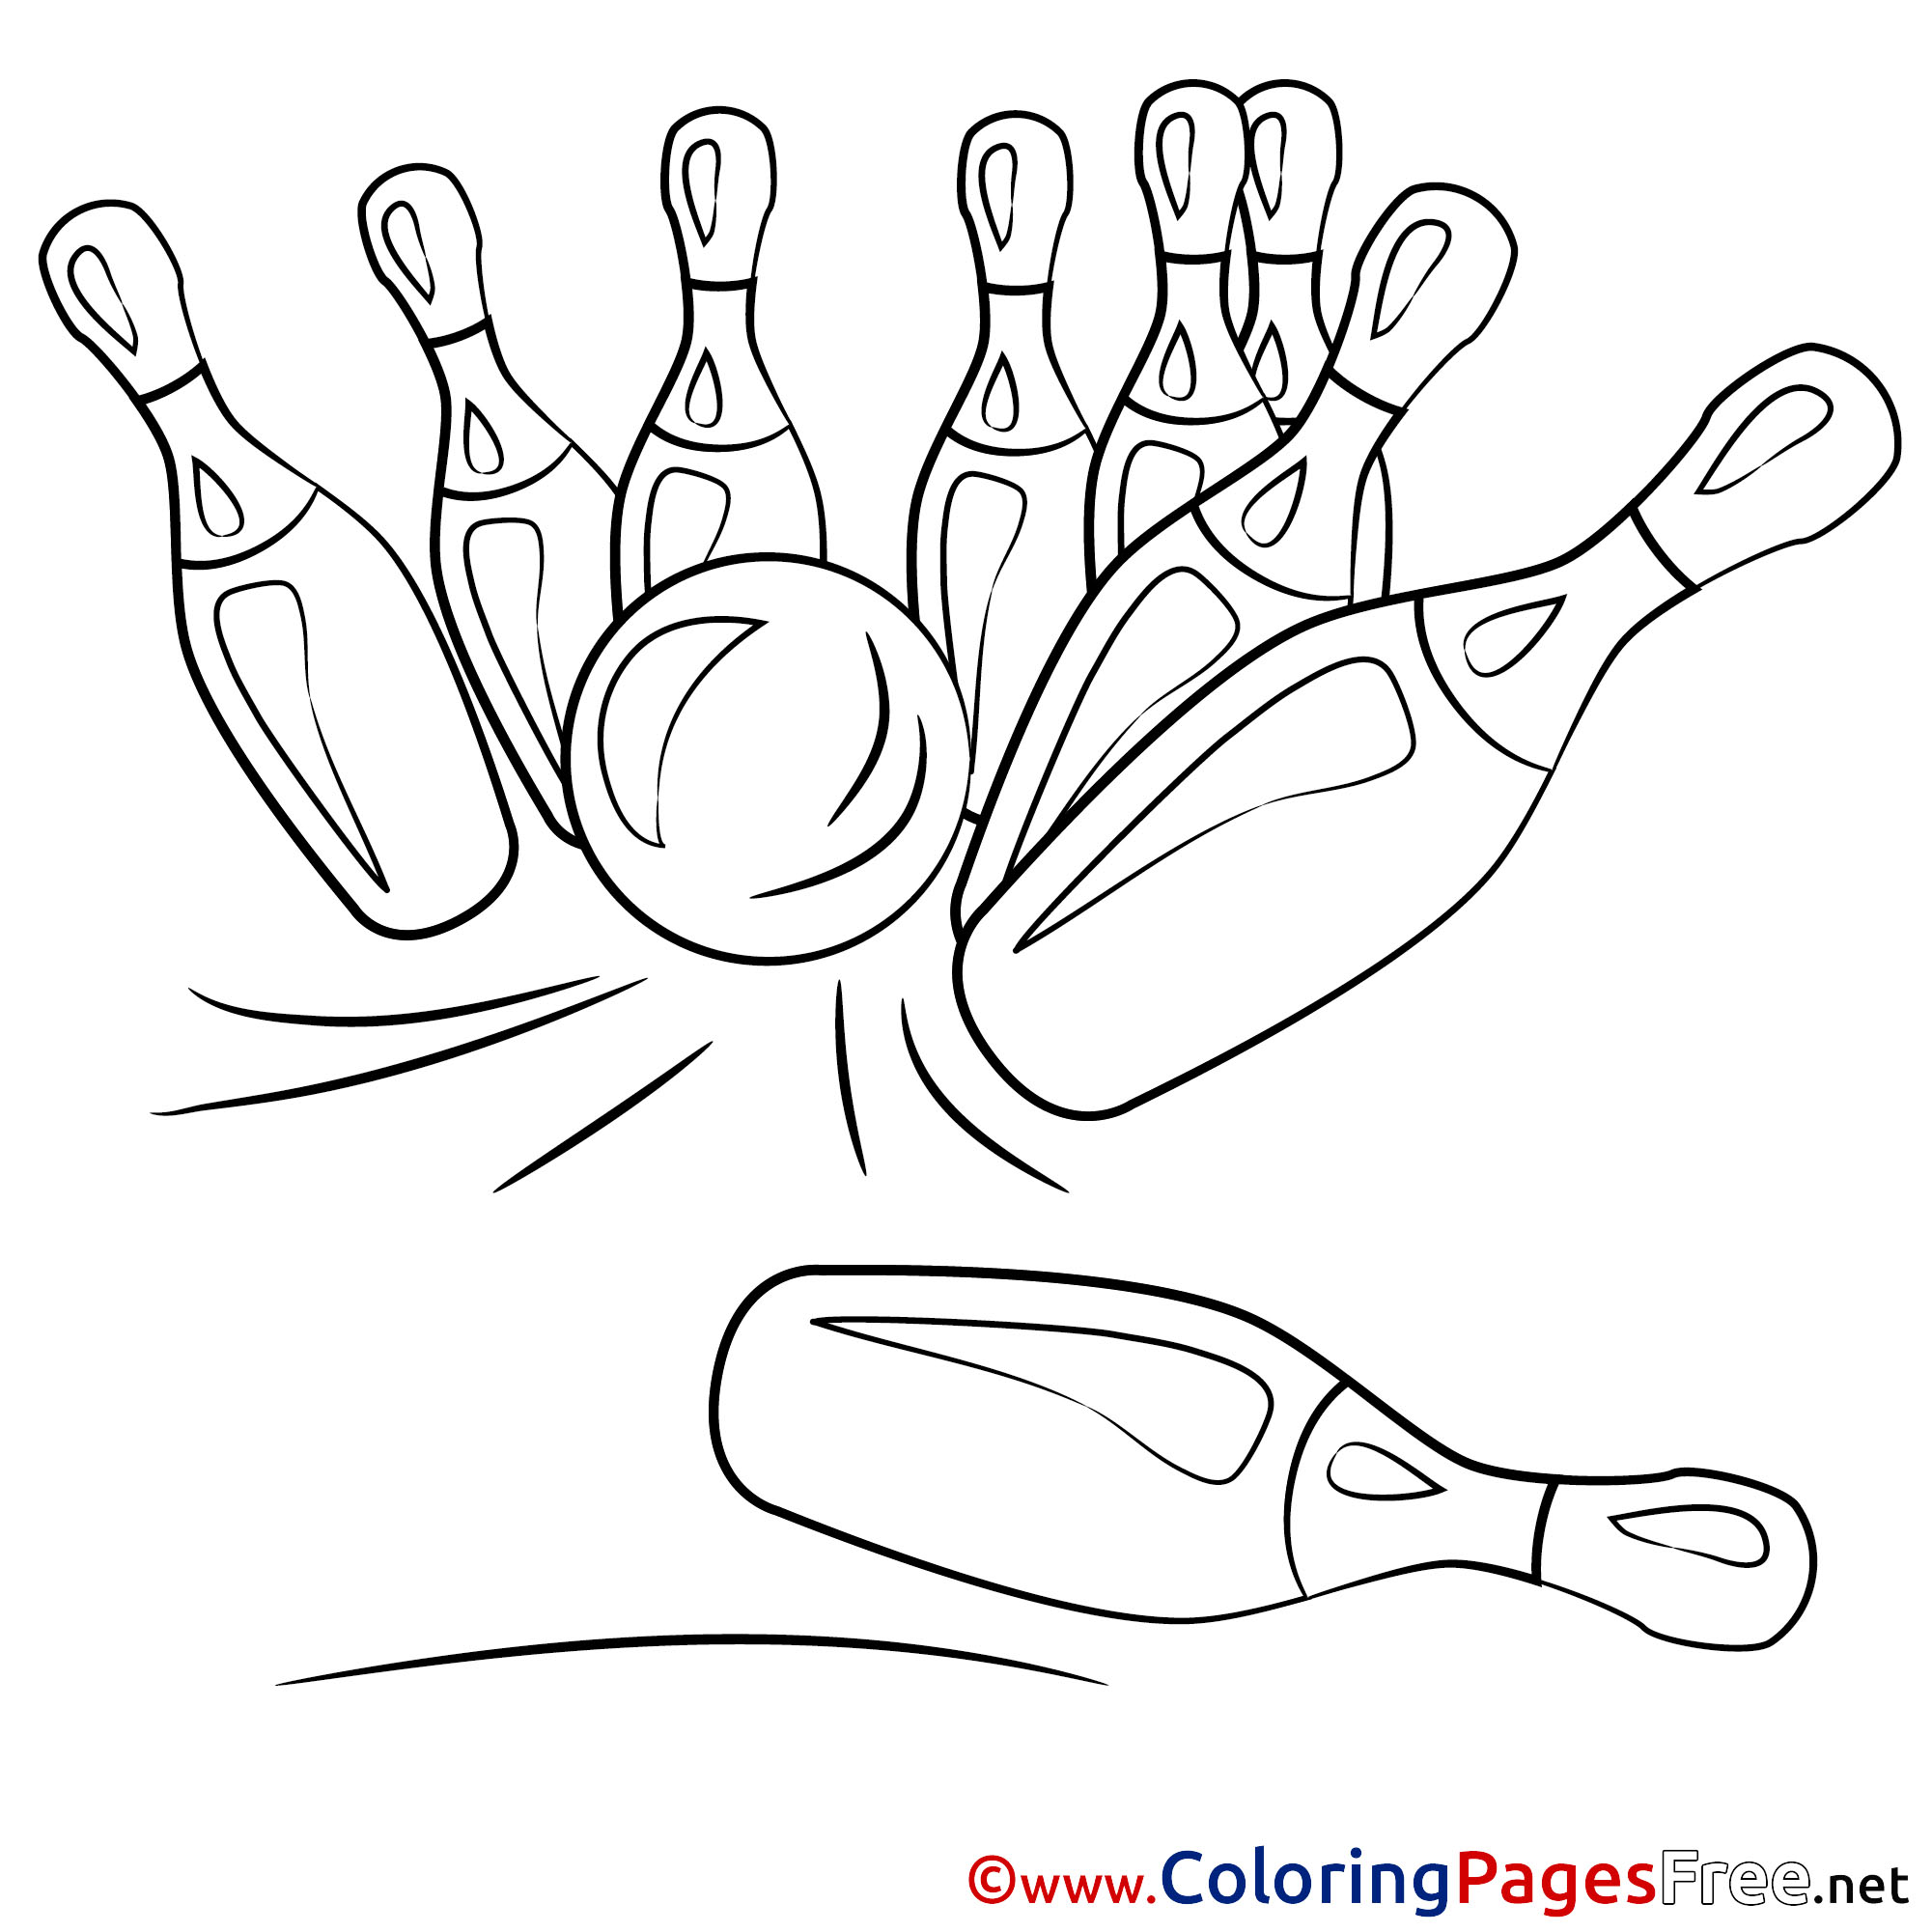 Bowling Ball Crashing Into Bowling Pins Coloring Page | 2001x2001